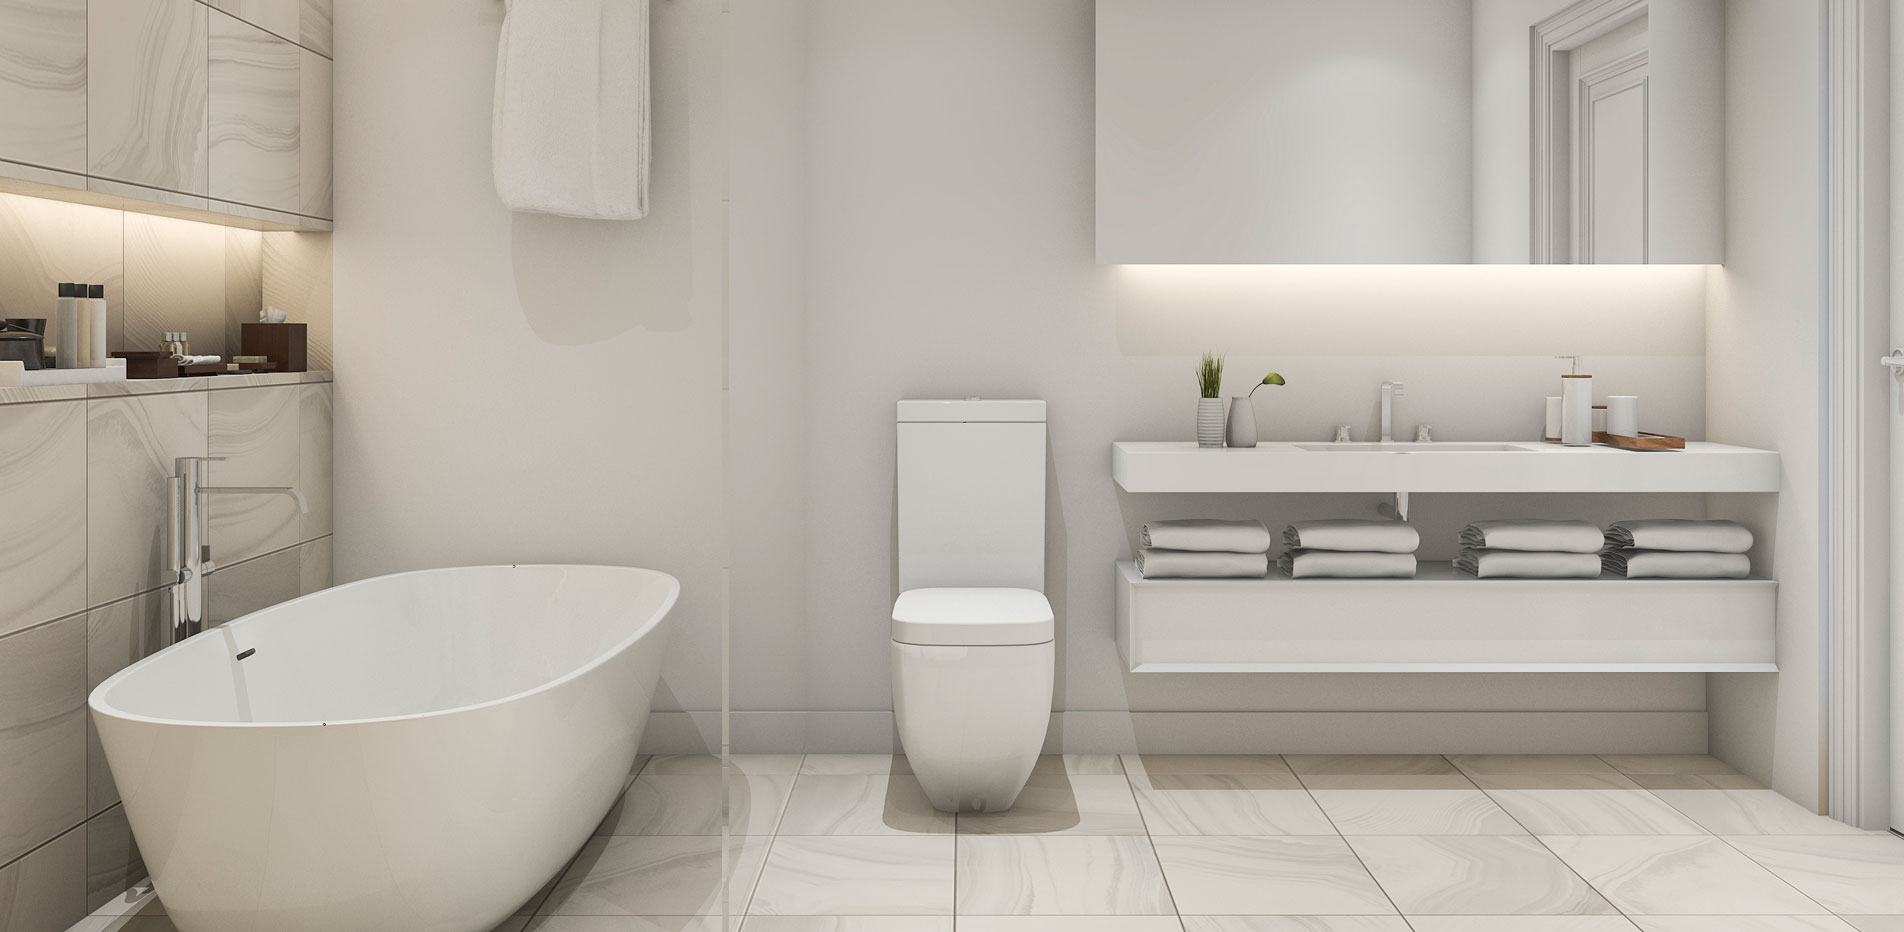 London bath co fully fitted bathrooms in london Bathroom design company london